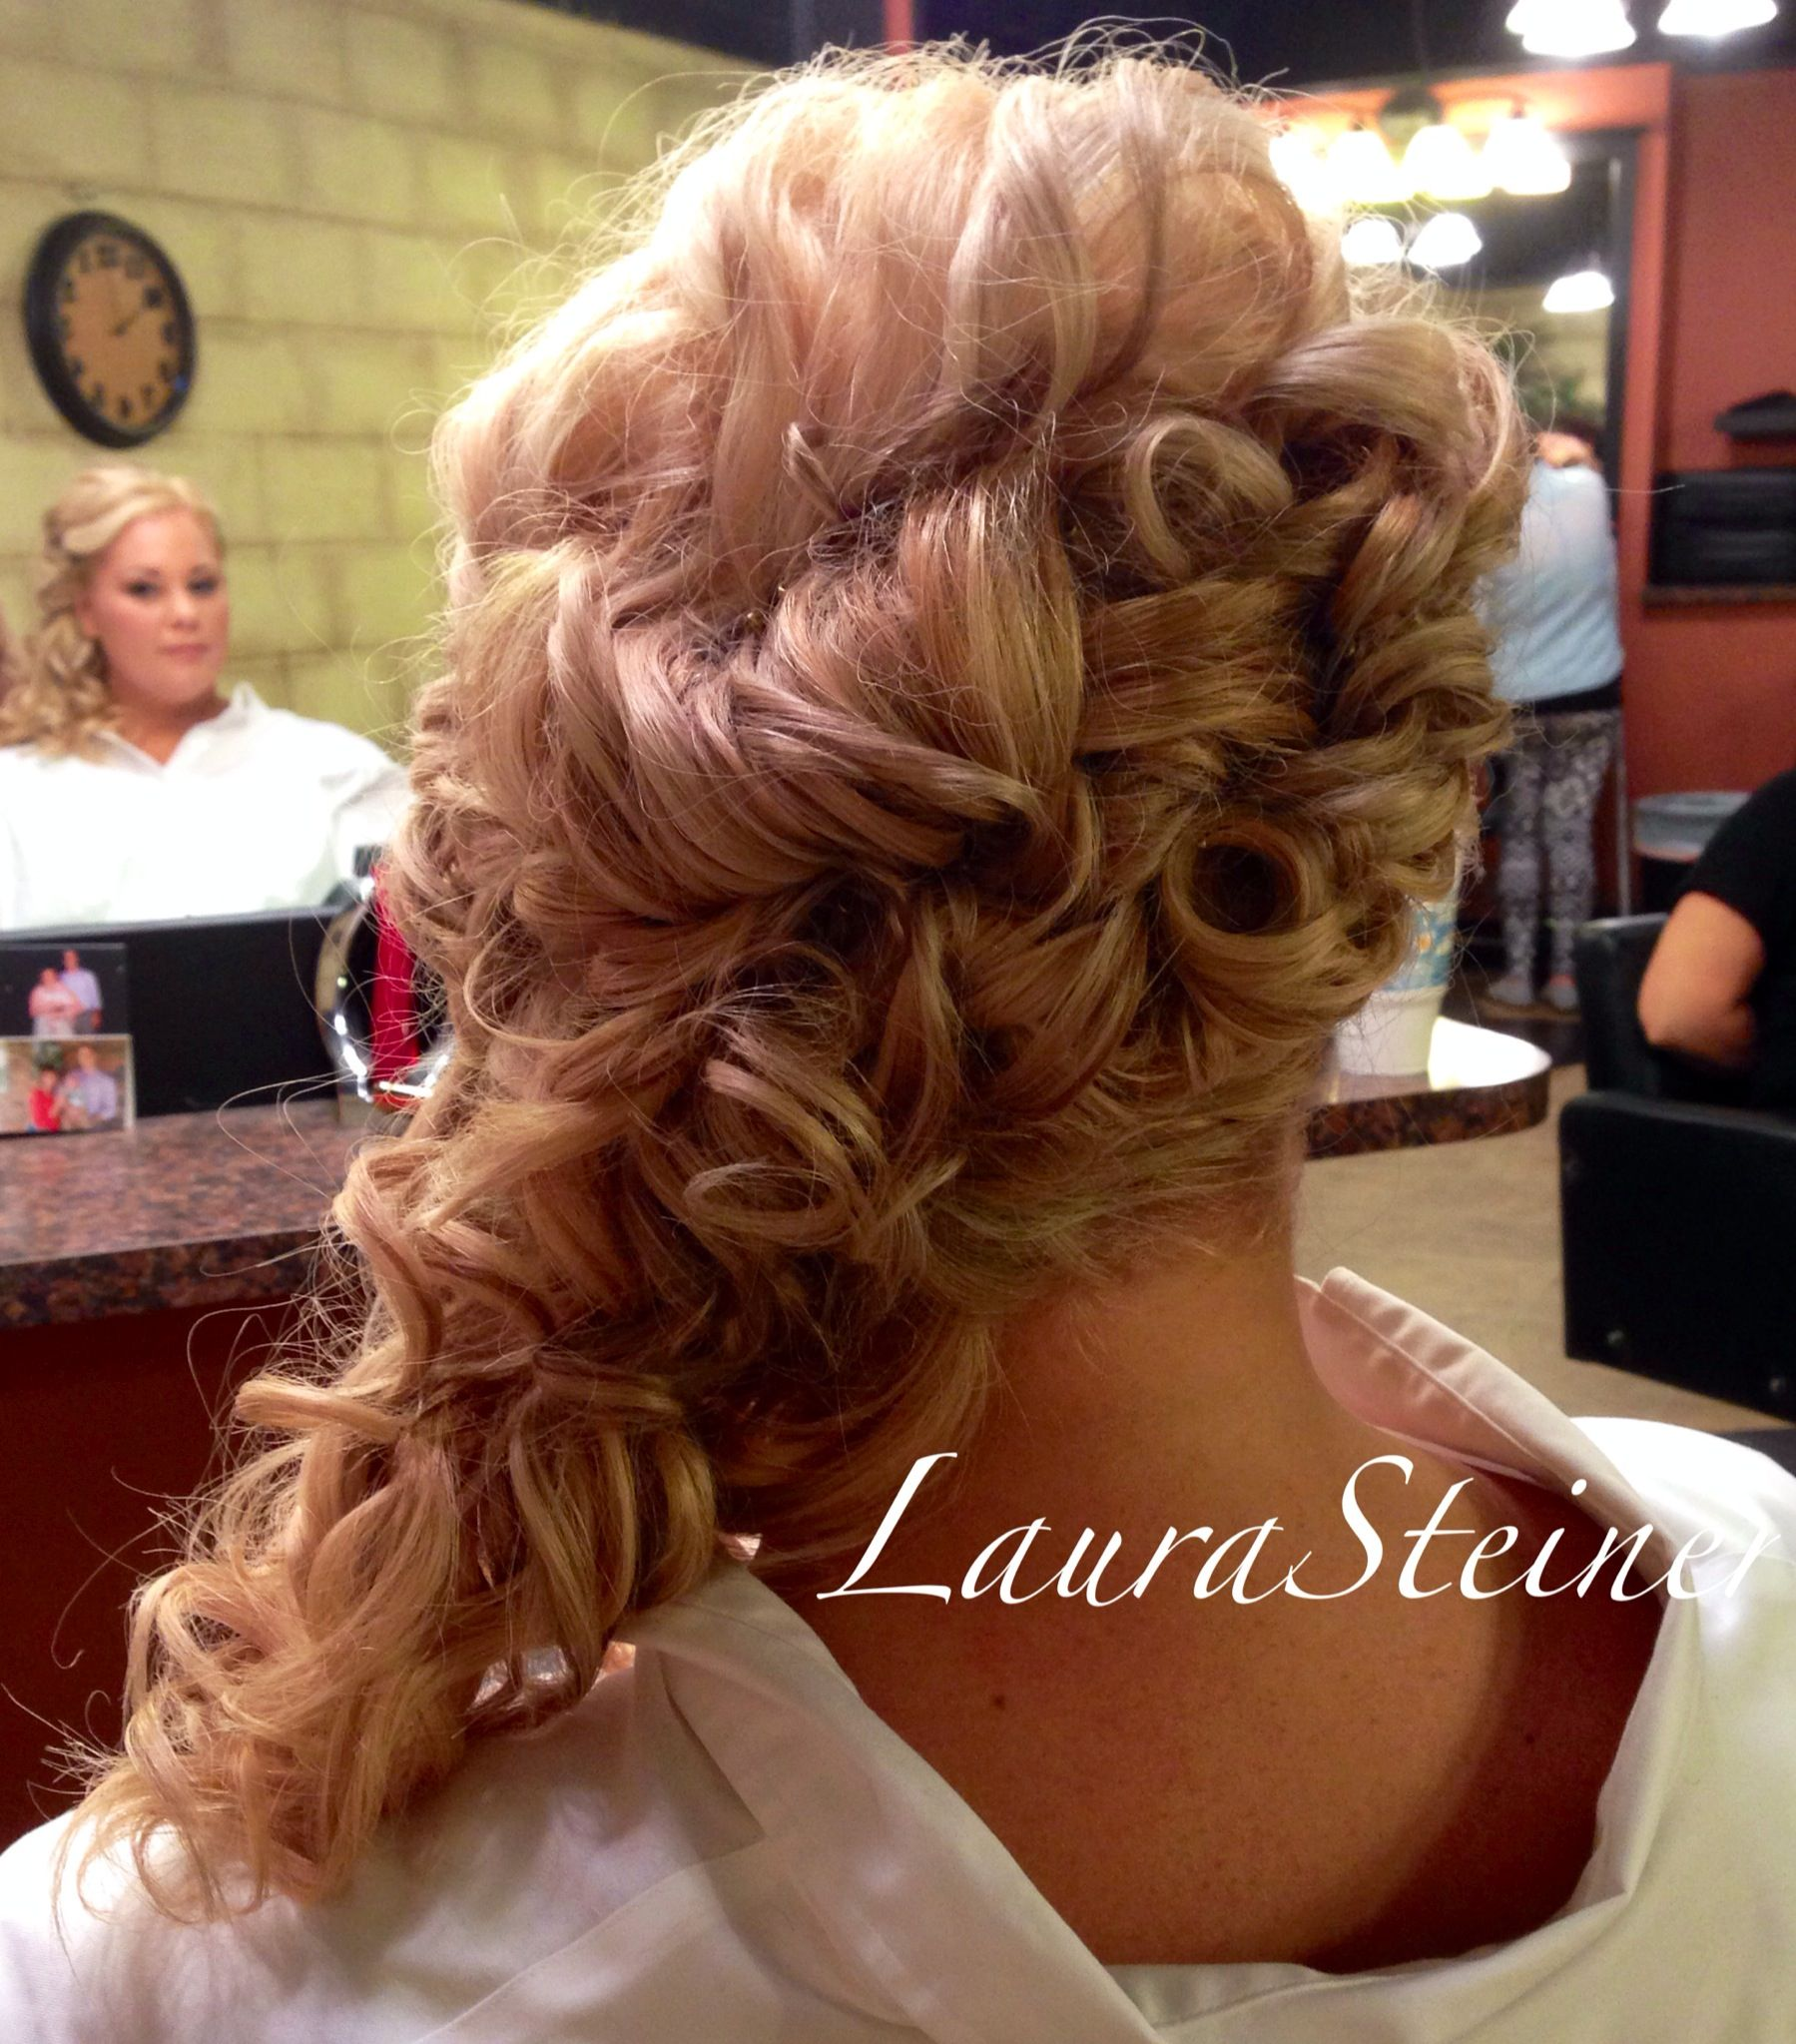 Bridal updo with cascading curls off one shoulder Lots of detail